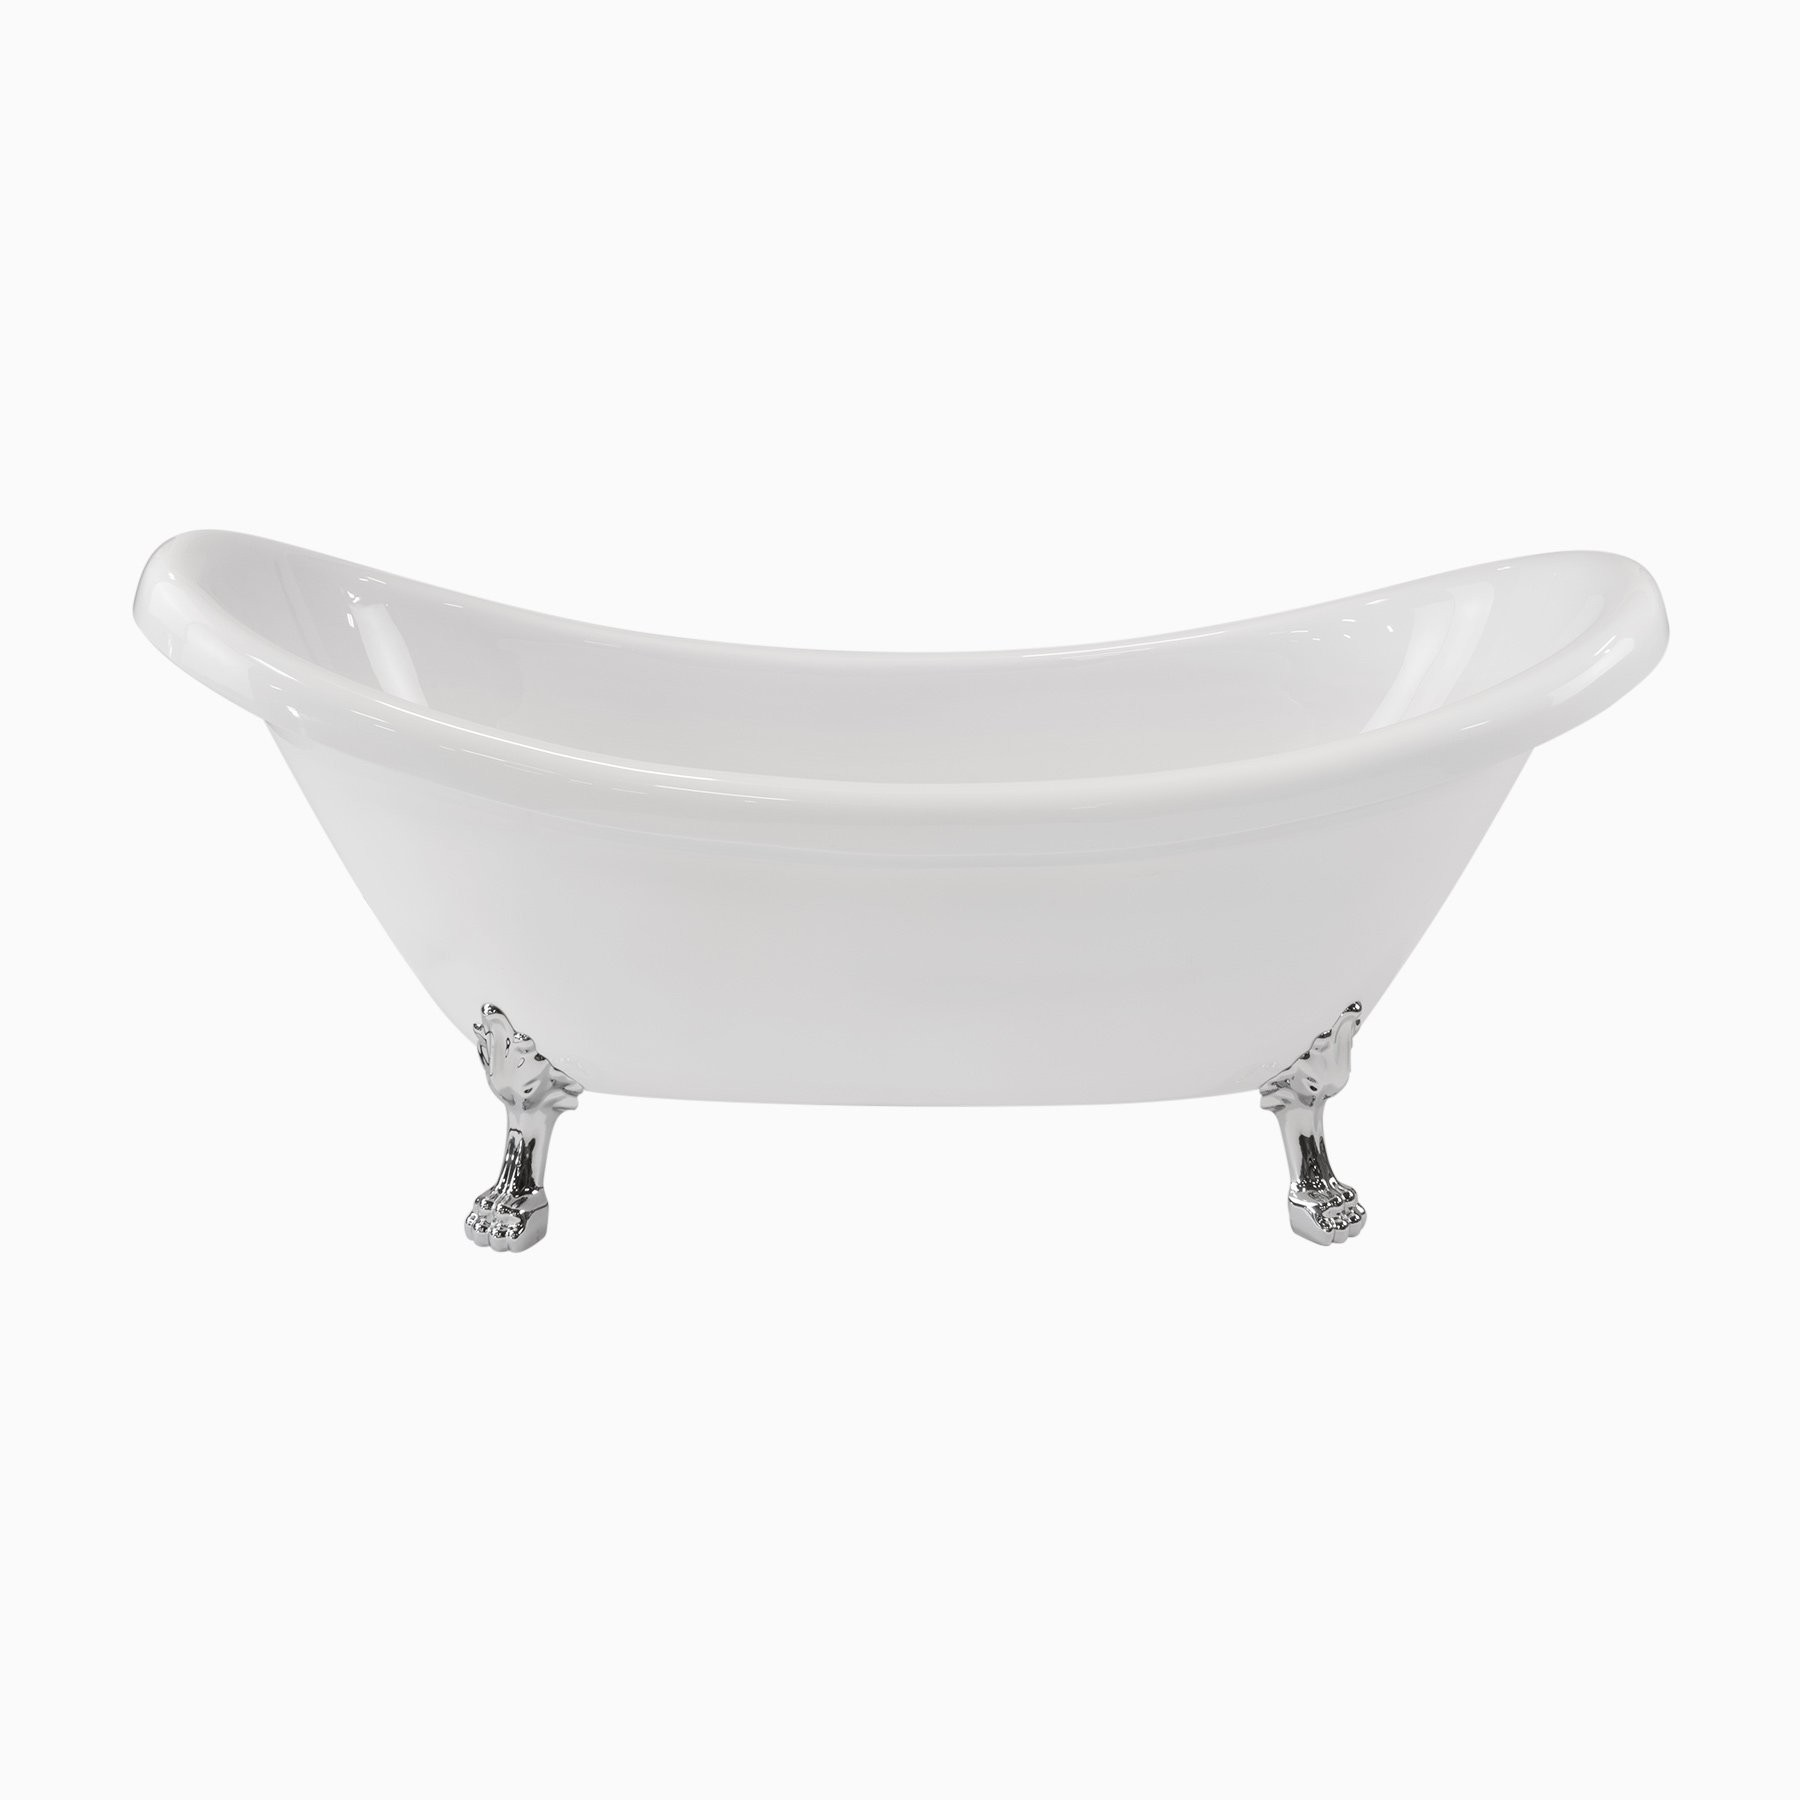 Clawfoot Tubs - Clawfoot Bathtub for Sale - Clawfoot Soaking Tub